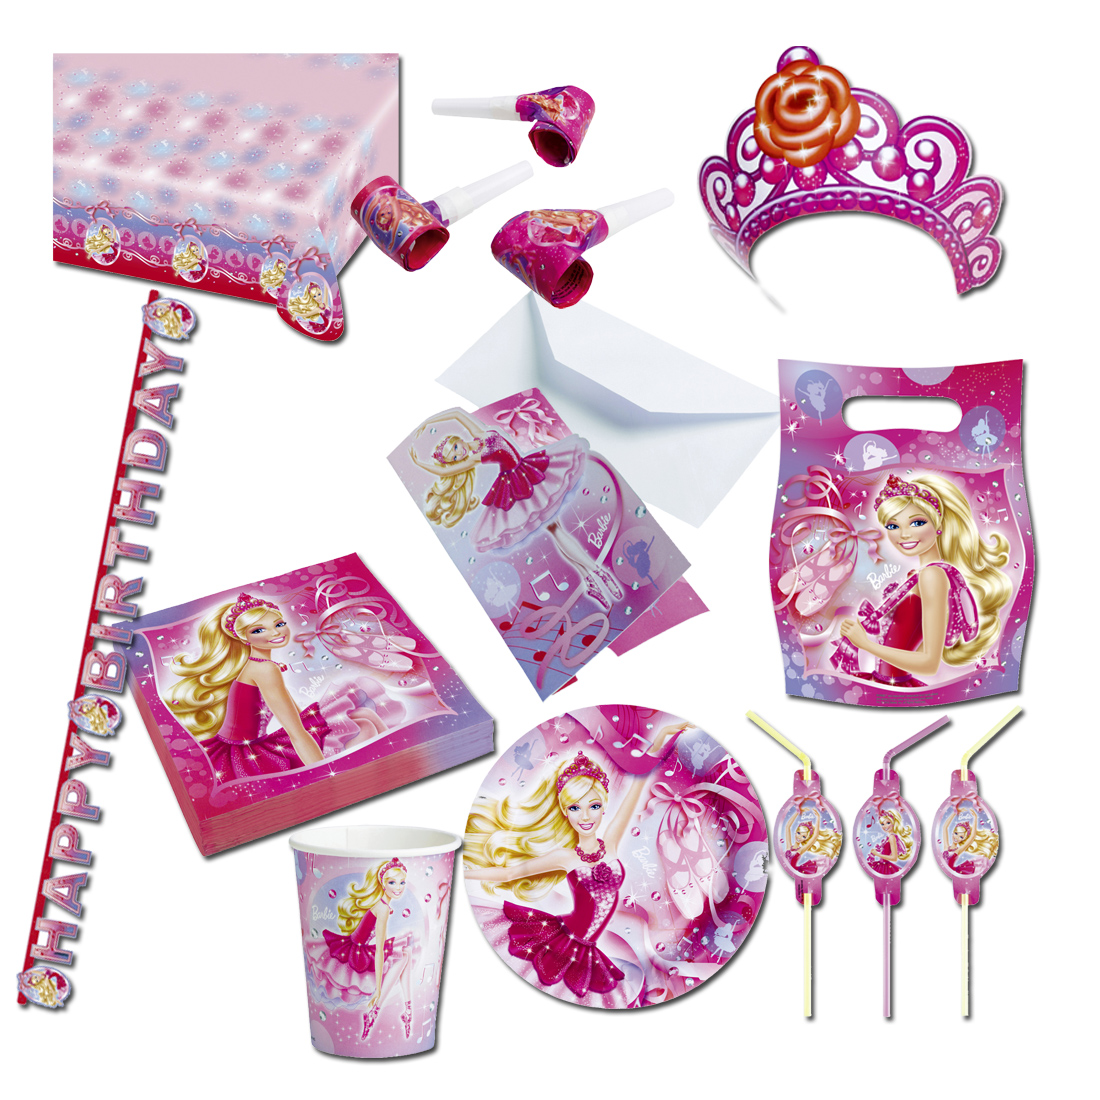 barbie deko set kindergeburtstag partydeko m dchen kinderparty dekoration rosa ebay. Black Bedroom Furniture Sets. Home Design Ideas